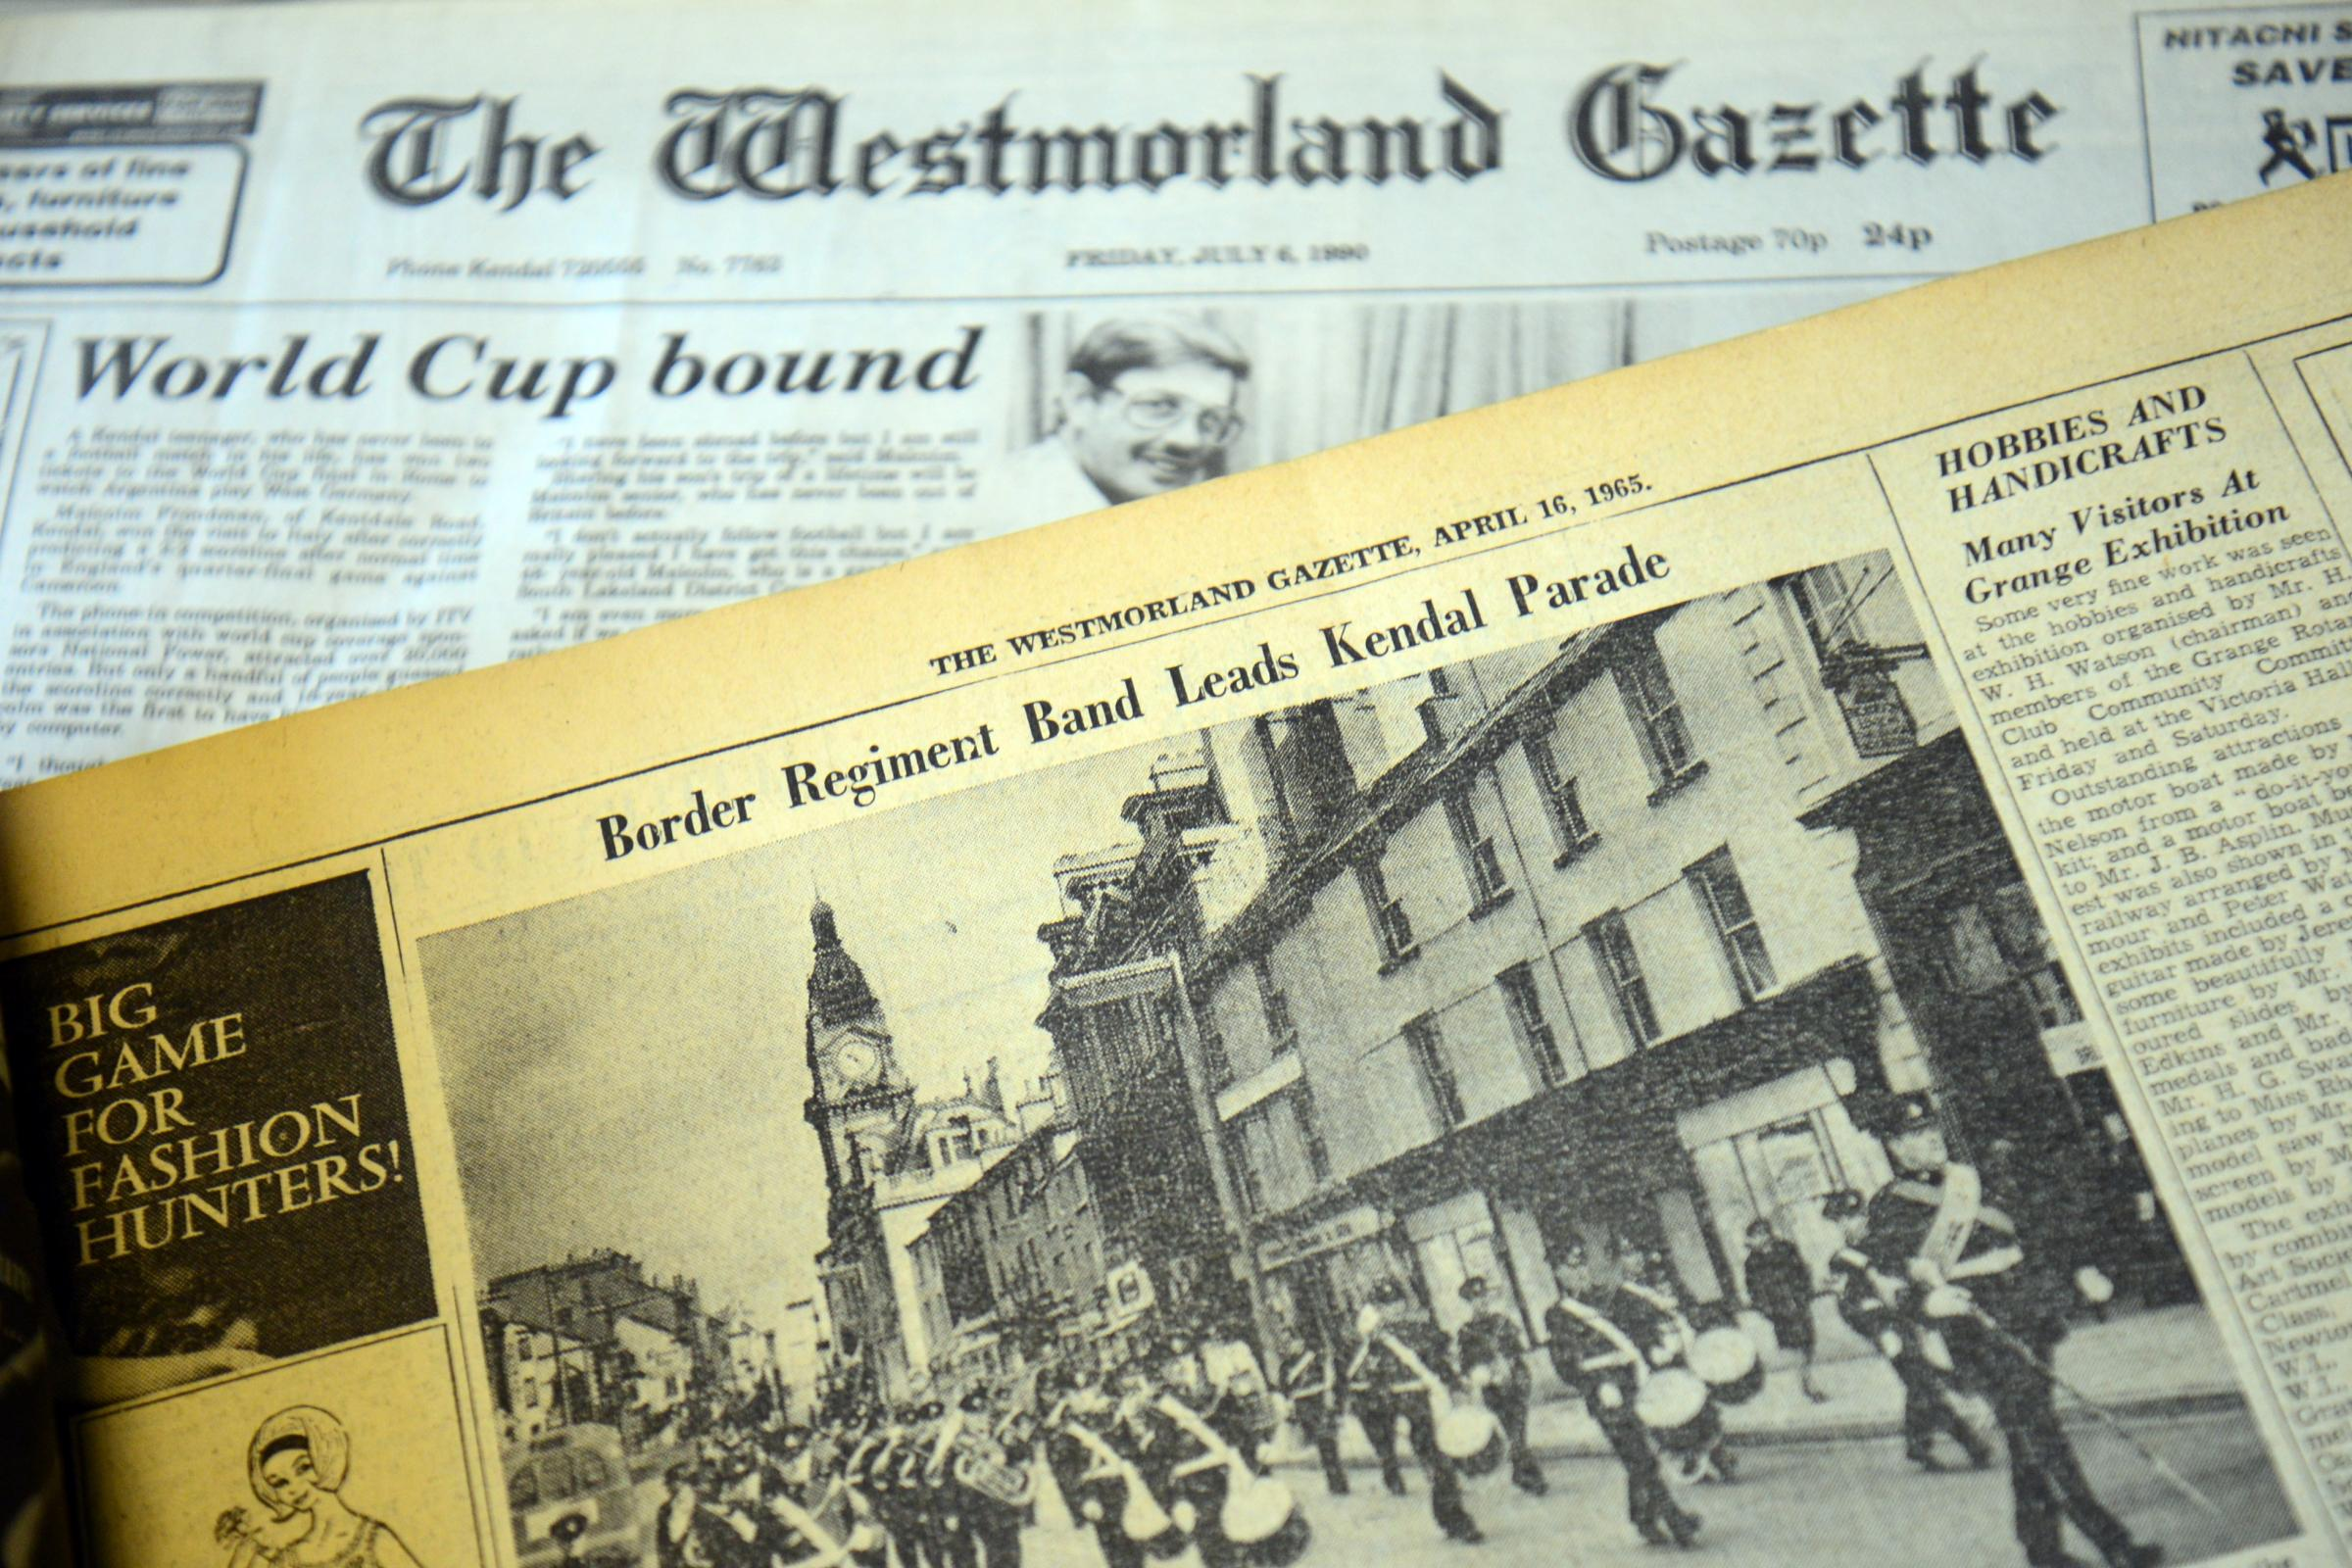 Stories from The Westmorland Gazette in years gone by